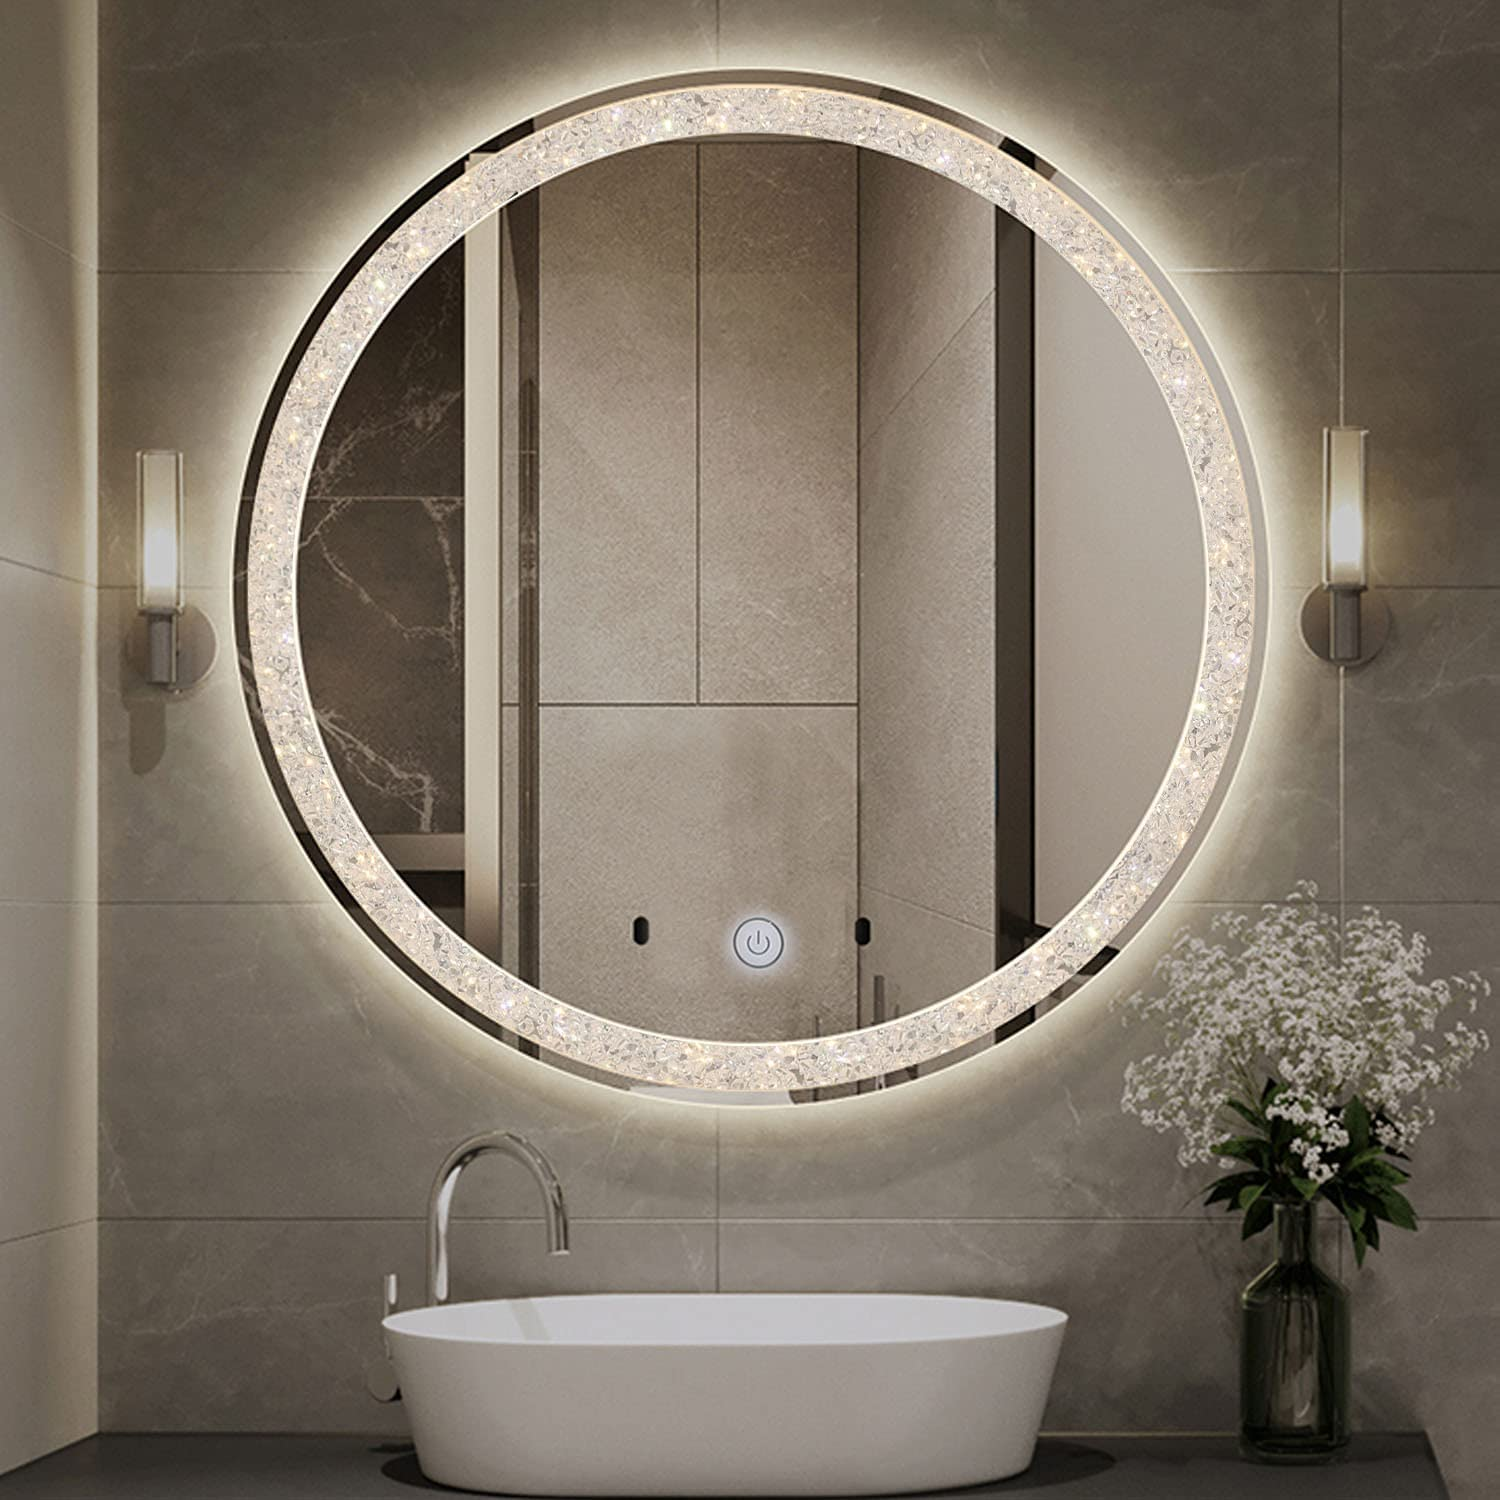 Phoenix Mall online shopping Chende Crystal LED Bathroom Mirror Round Mirro 28 Inches Makeup